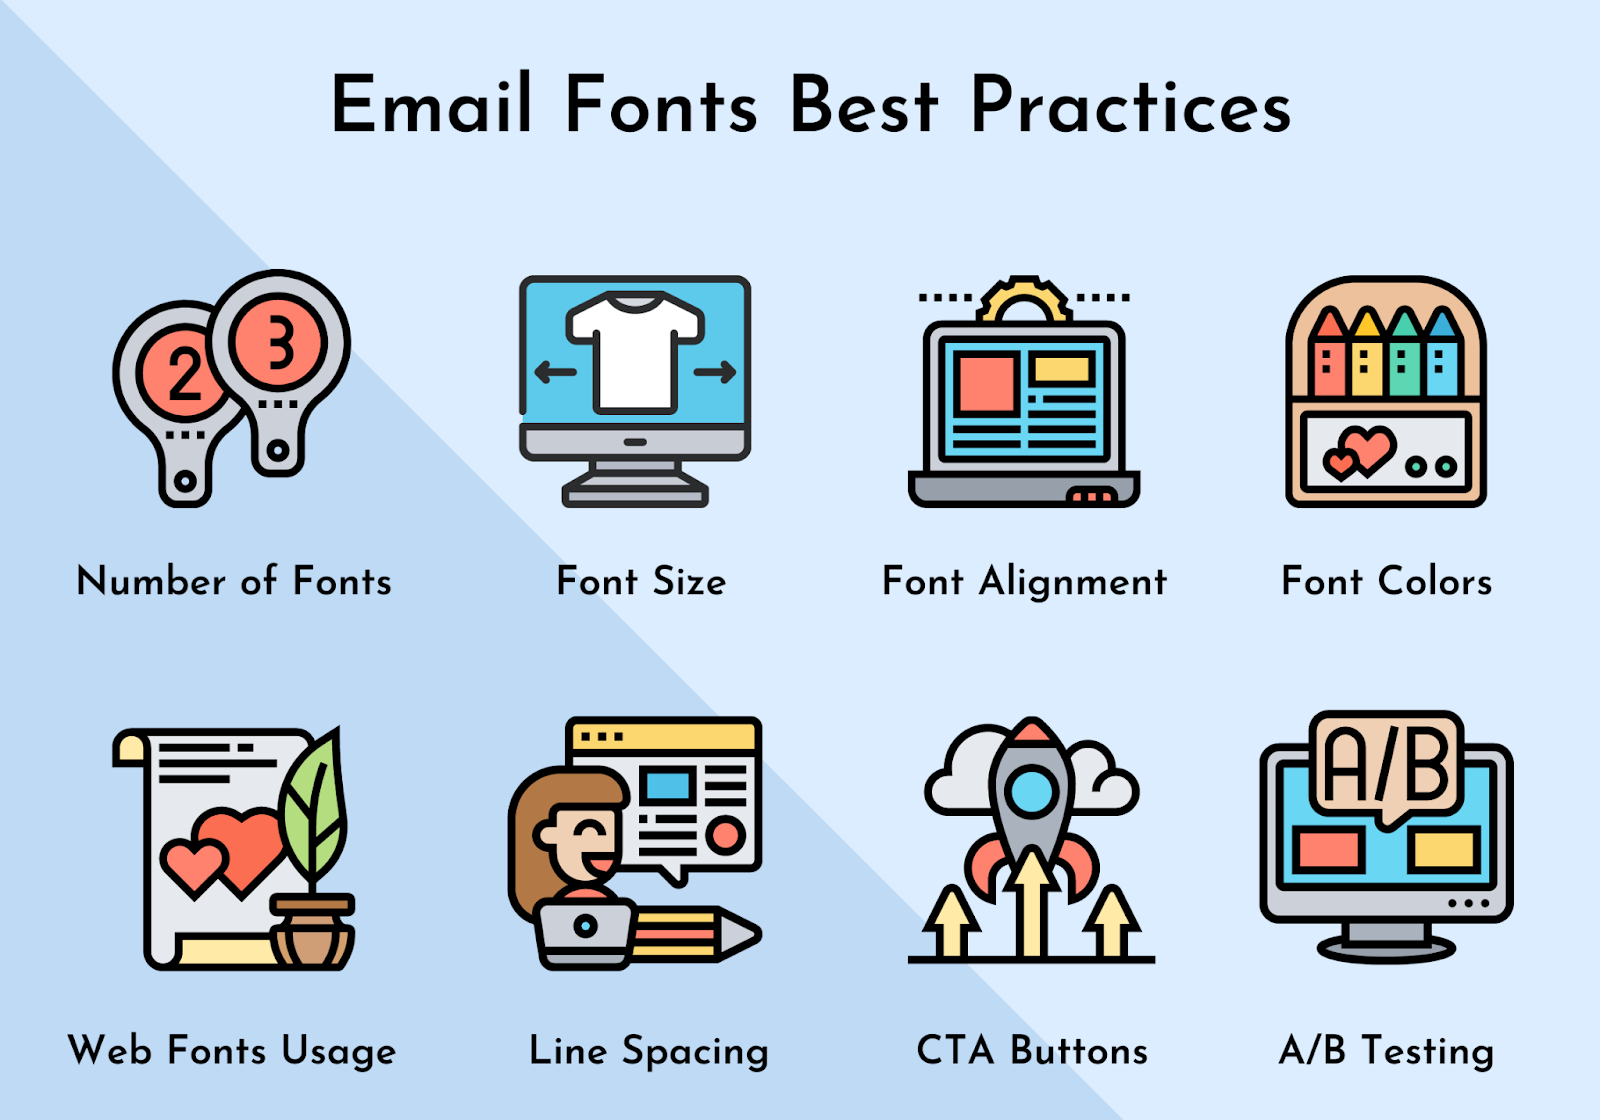 Email fonts best practices in email design